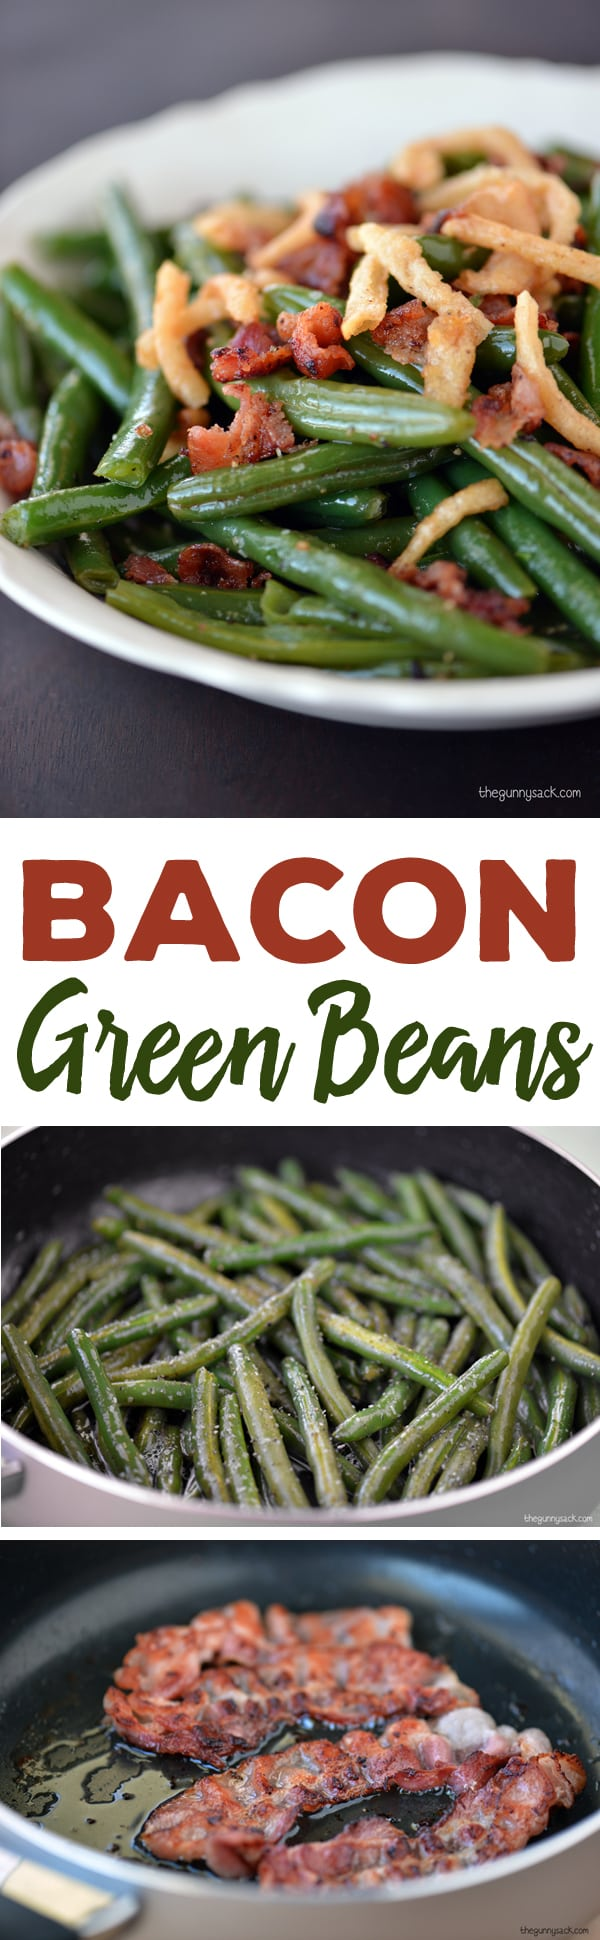 Bacon Green Beans Recipe: Green beans are always part of a traditional holiday dinner, but when bacon and French fried onions are added, the green beans become a showcase dish. #bacon #sidedish